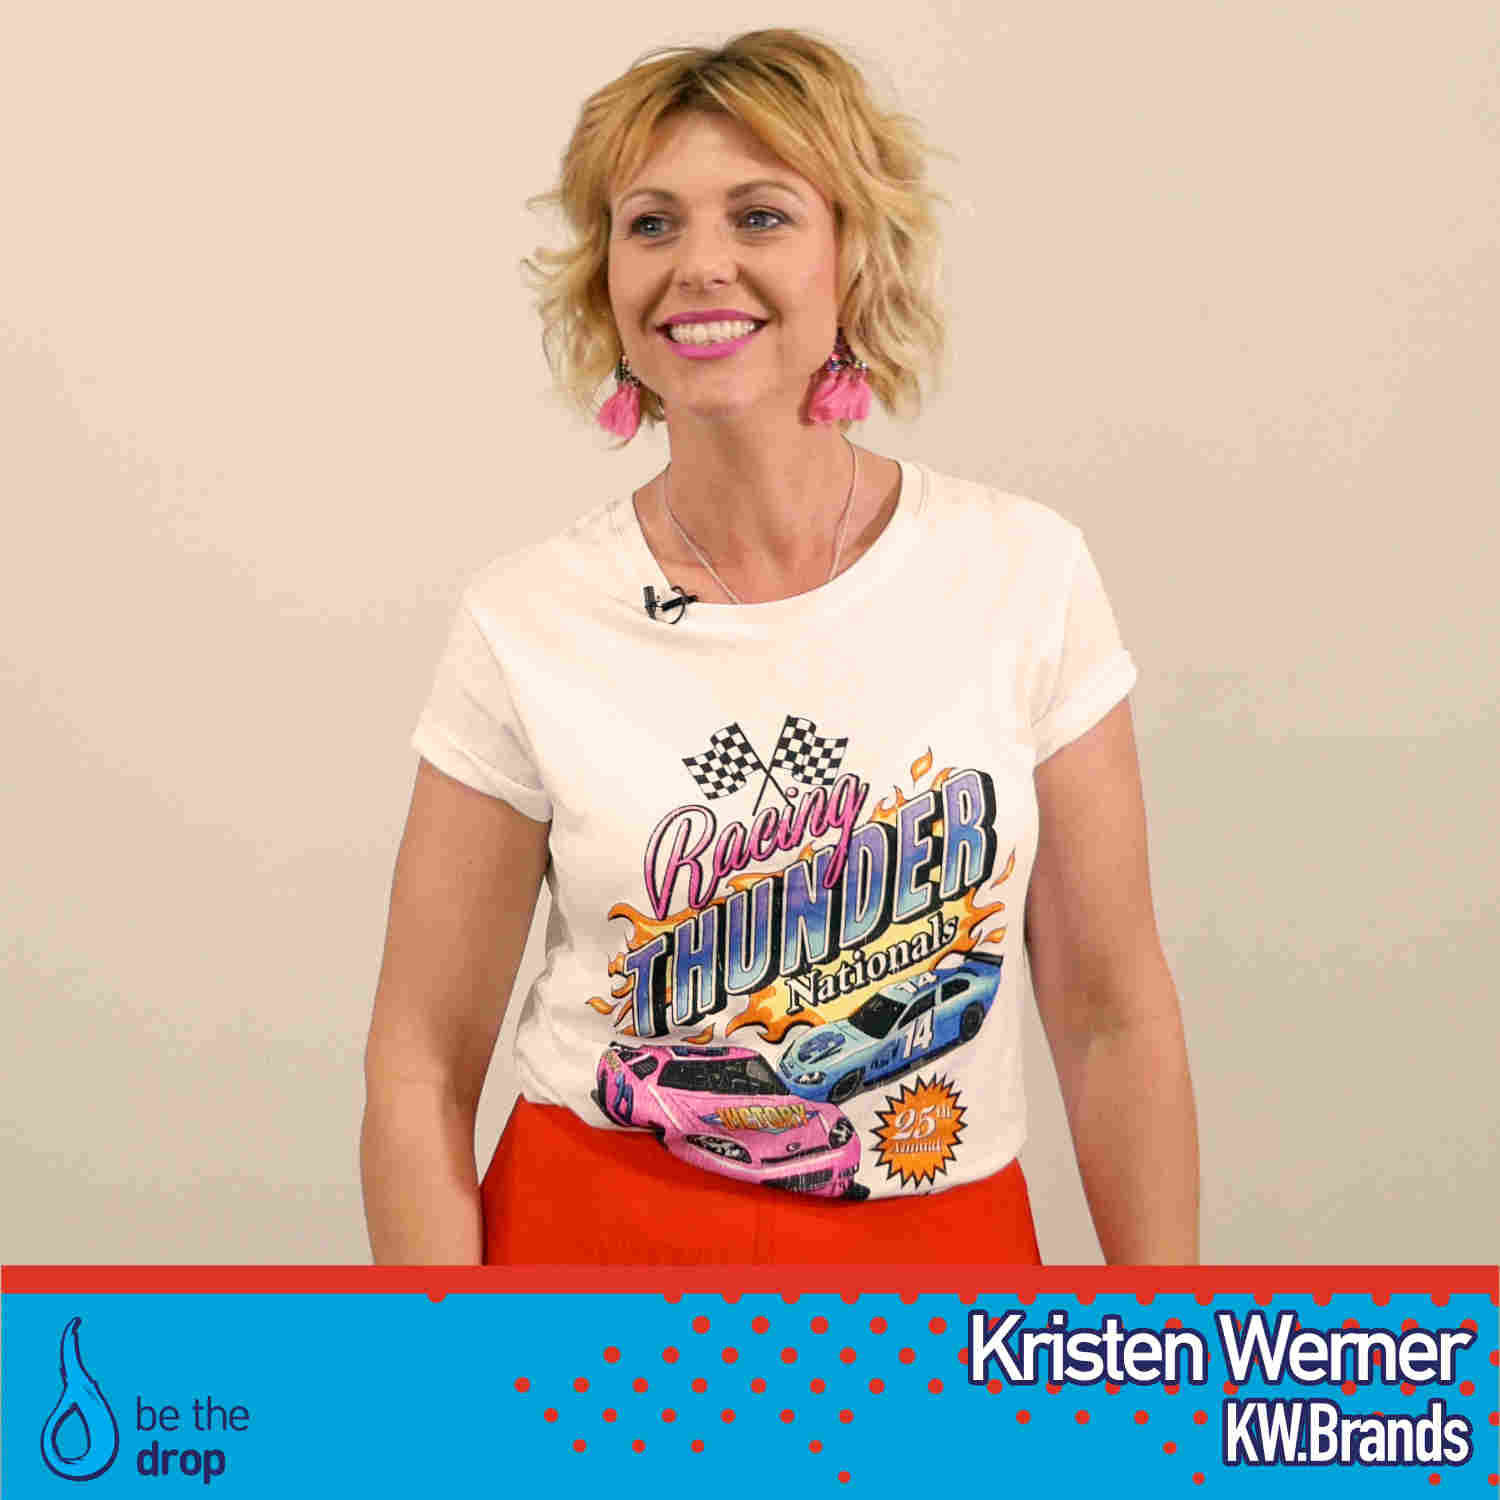 Personal Branding Tips From Brand Expert Kristen Werner [Podcast]